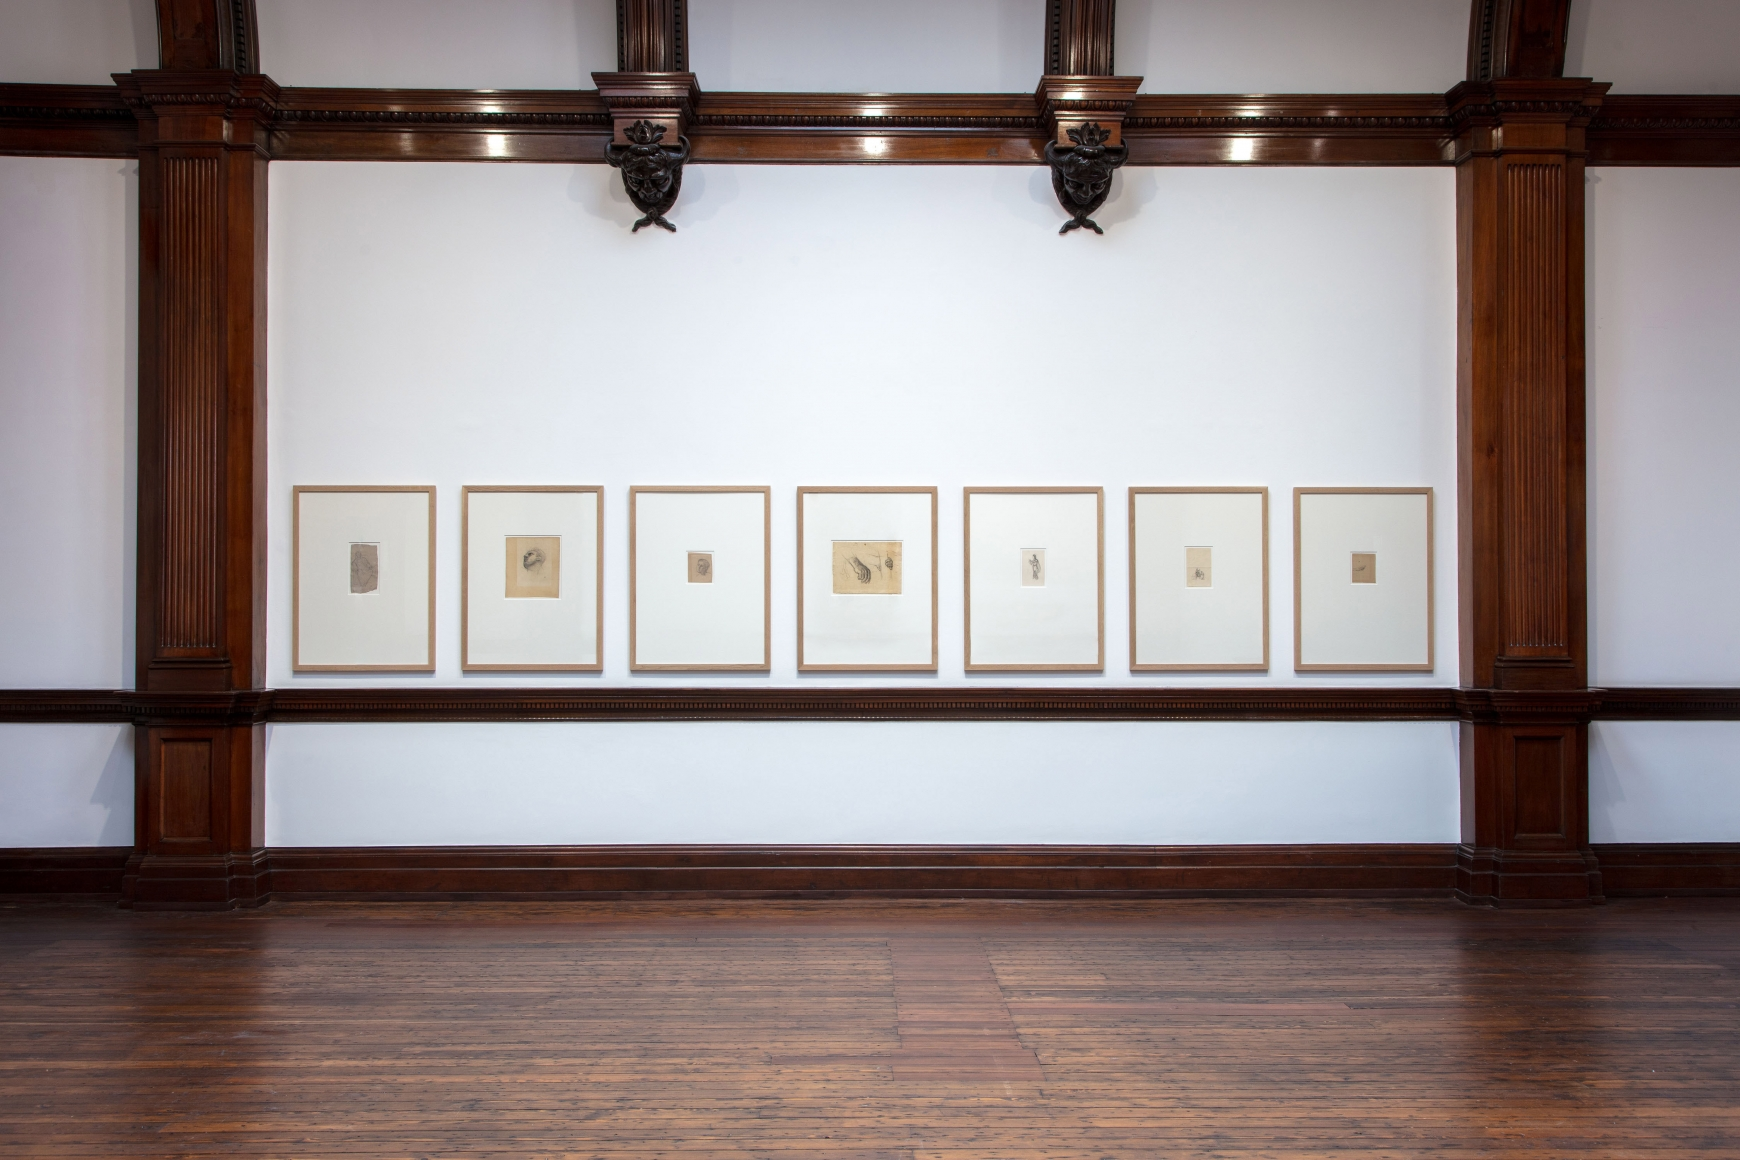 PIERRE PUVIS DE CHAVANNES, Works on Paper and Paintings, London, 2018, Installation Image 15